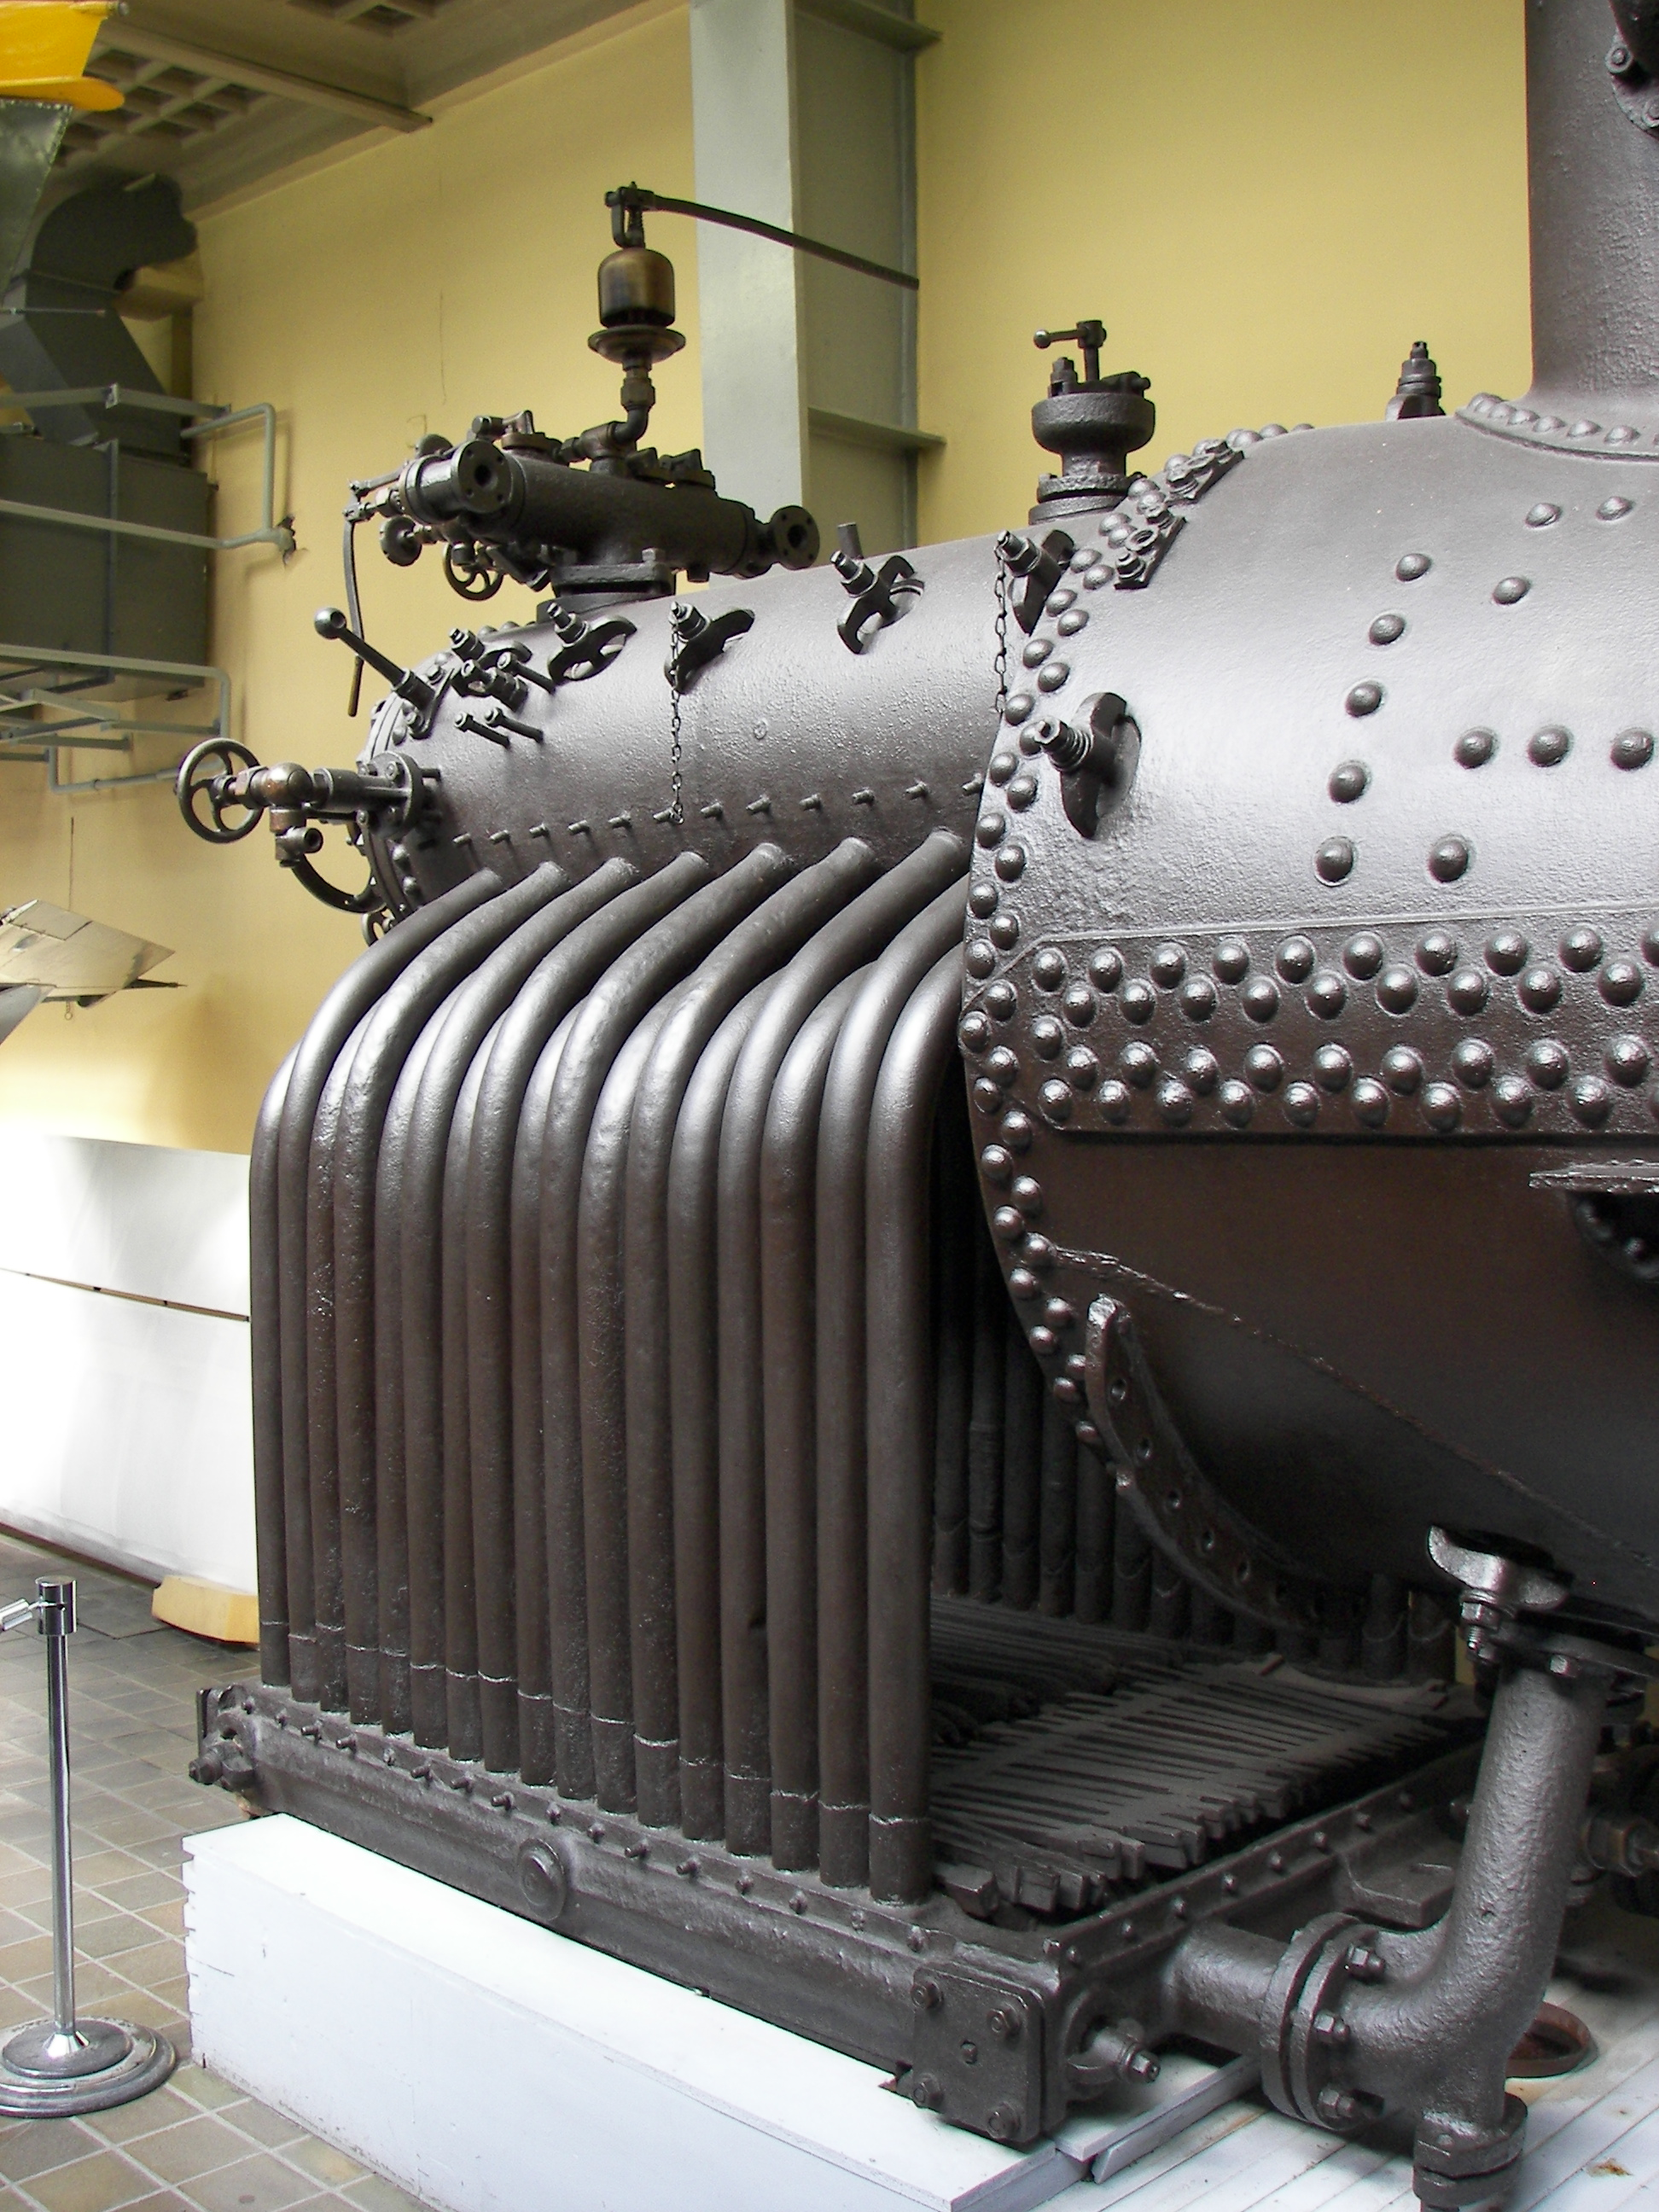 List of boiler types, by manufacturer